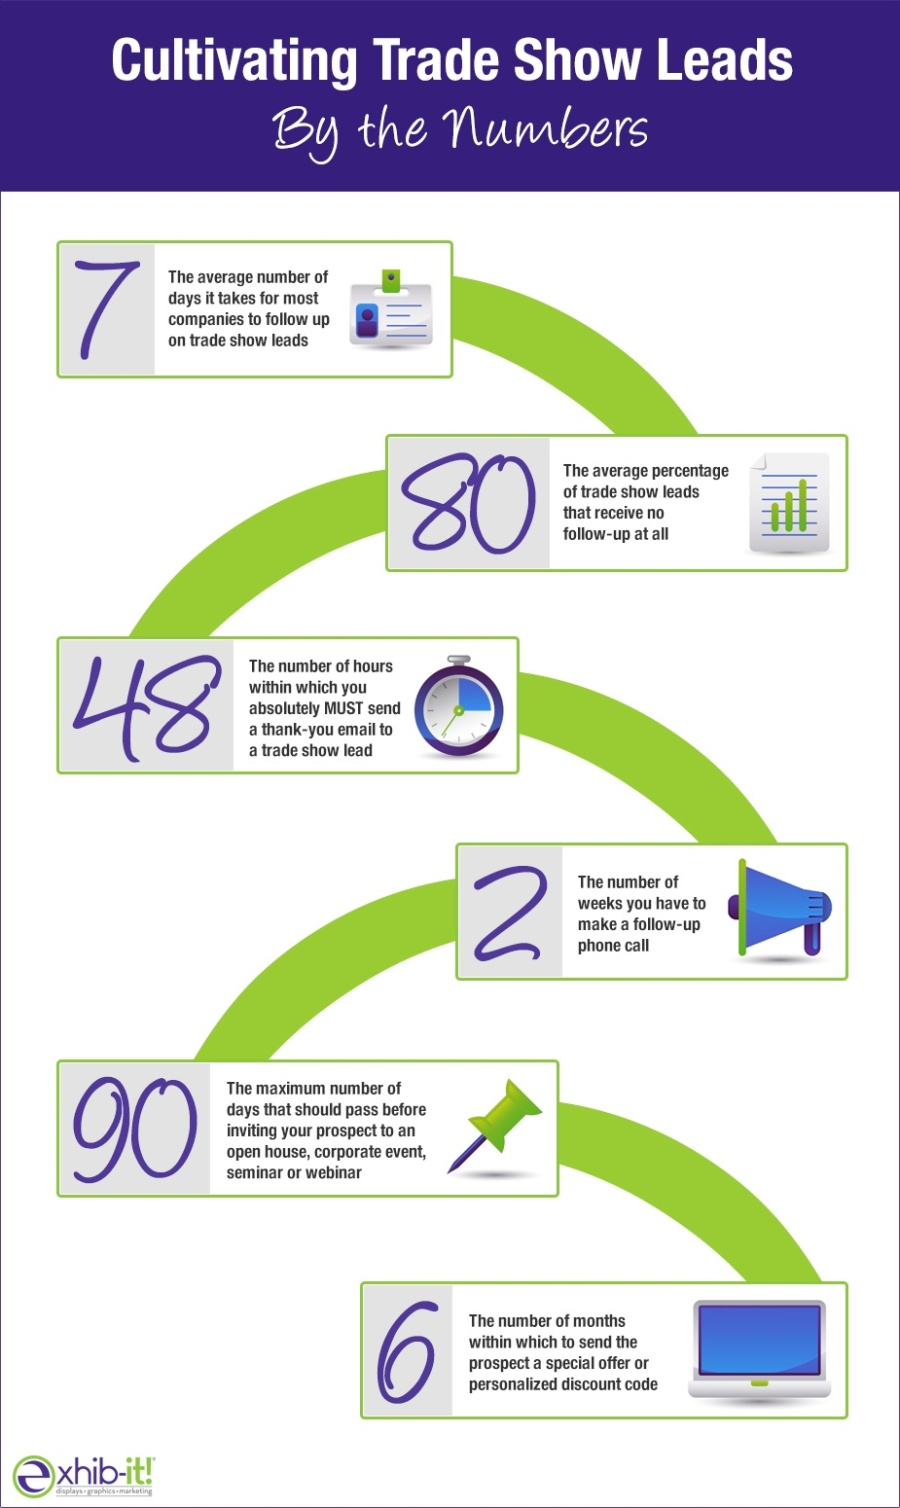 lead-cultivation-infographic